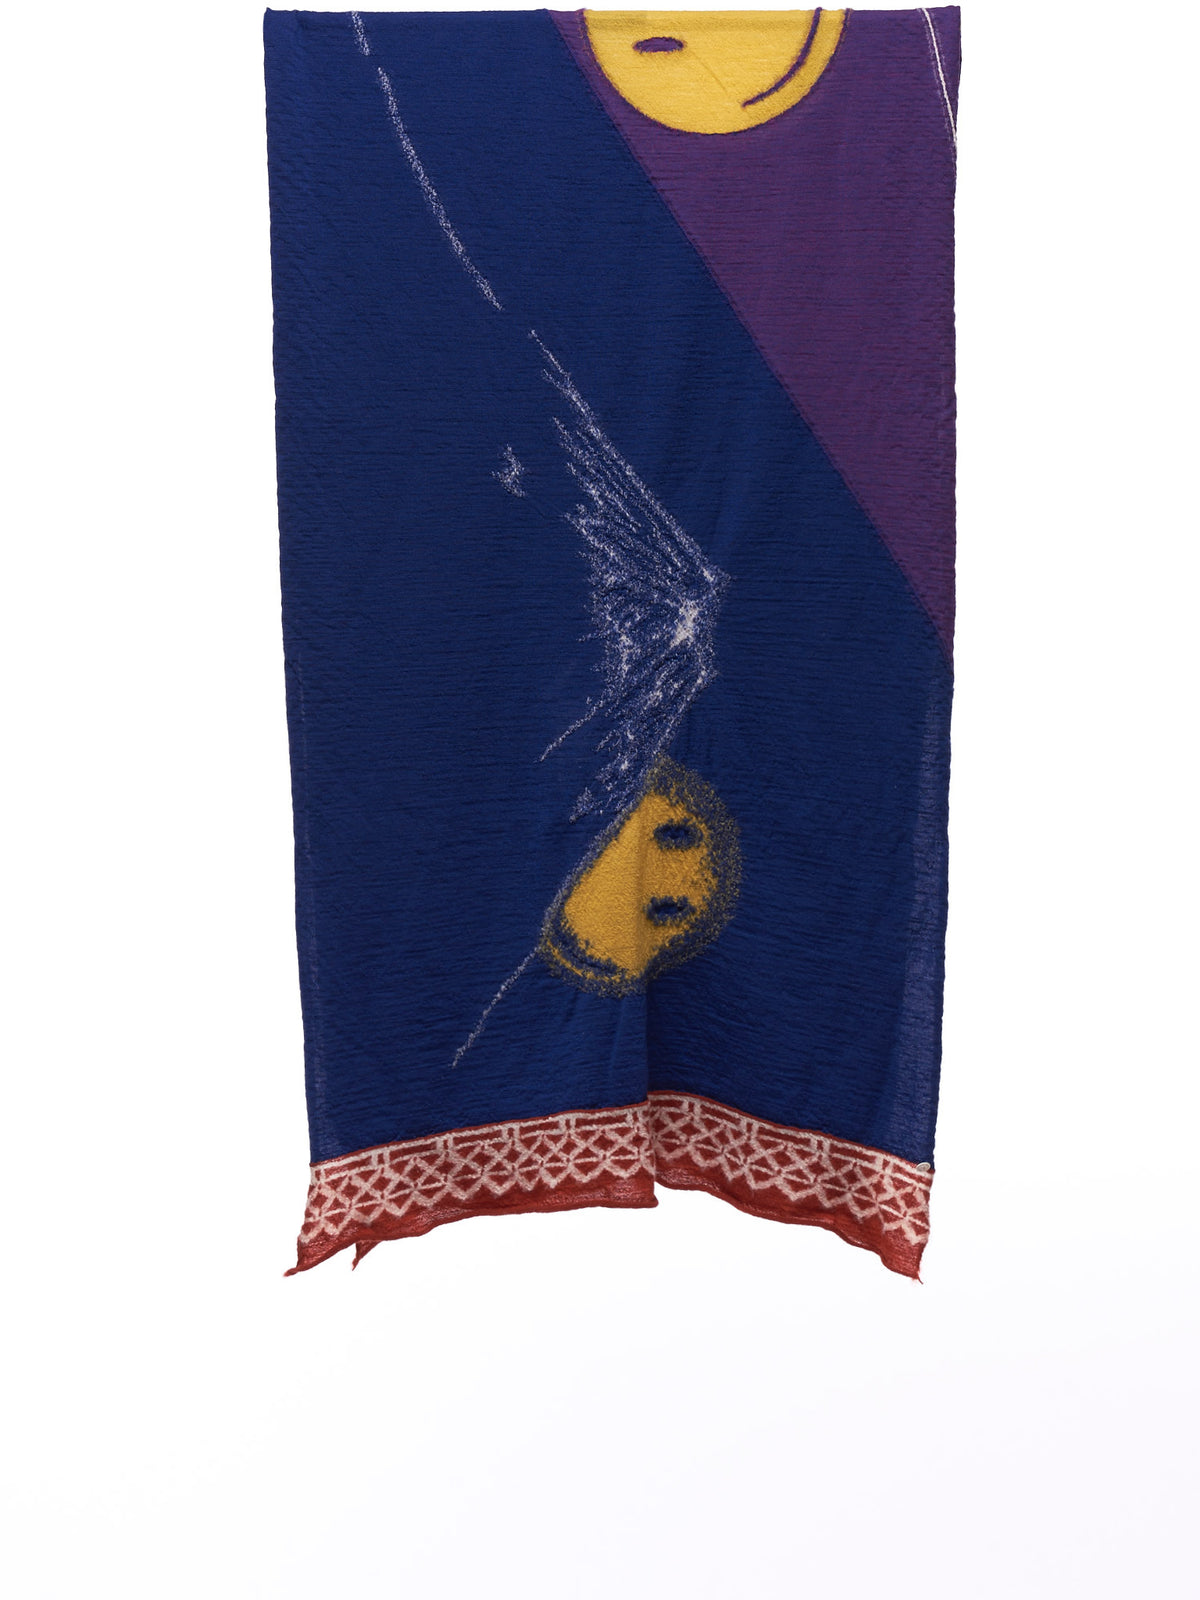 Sakura Kagami Fuji Scarf (EK-844-PURPLE-YELLOW-MULTI)